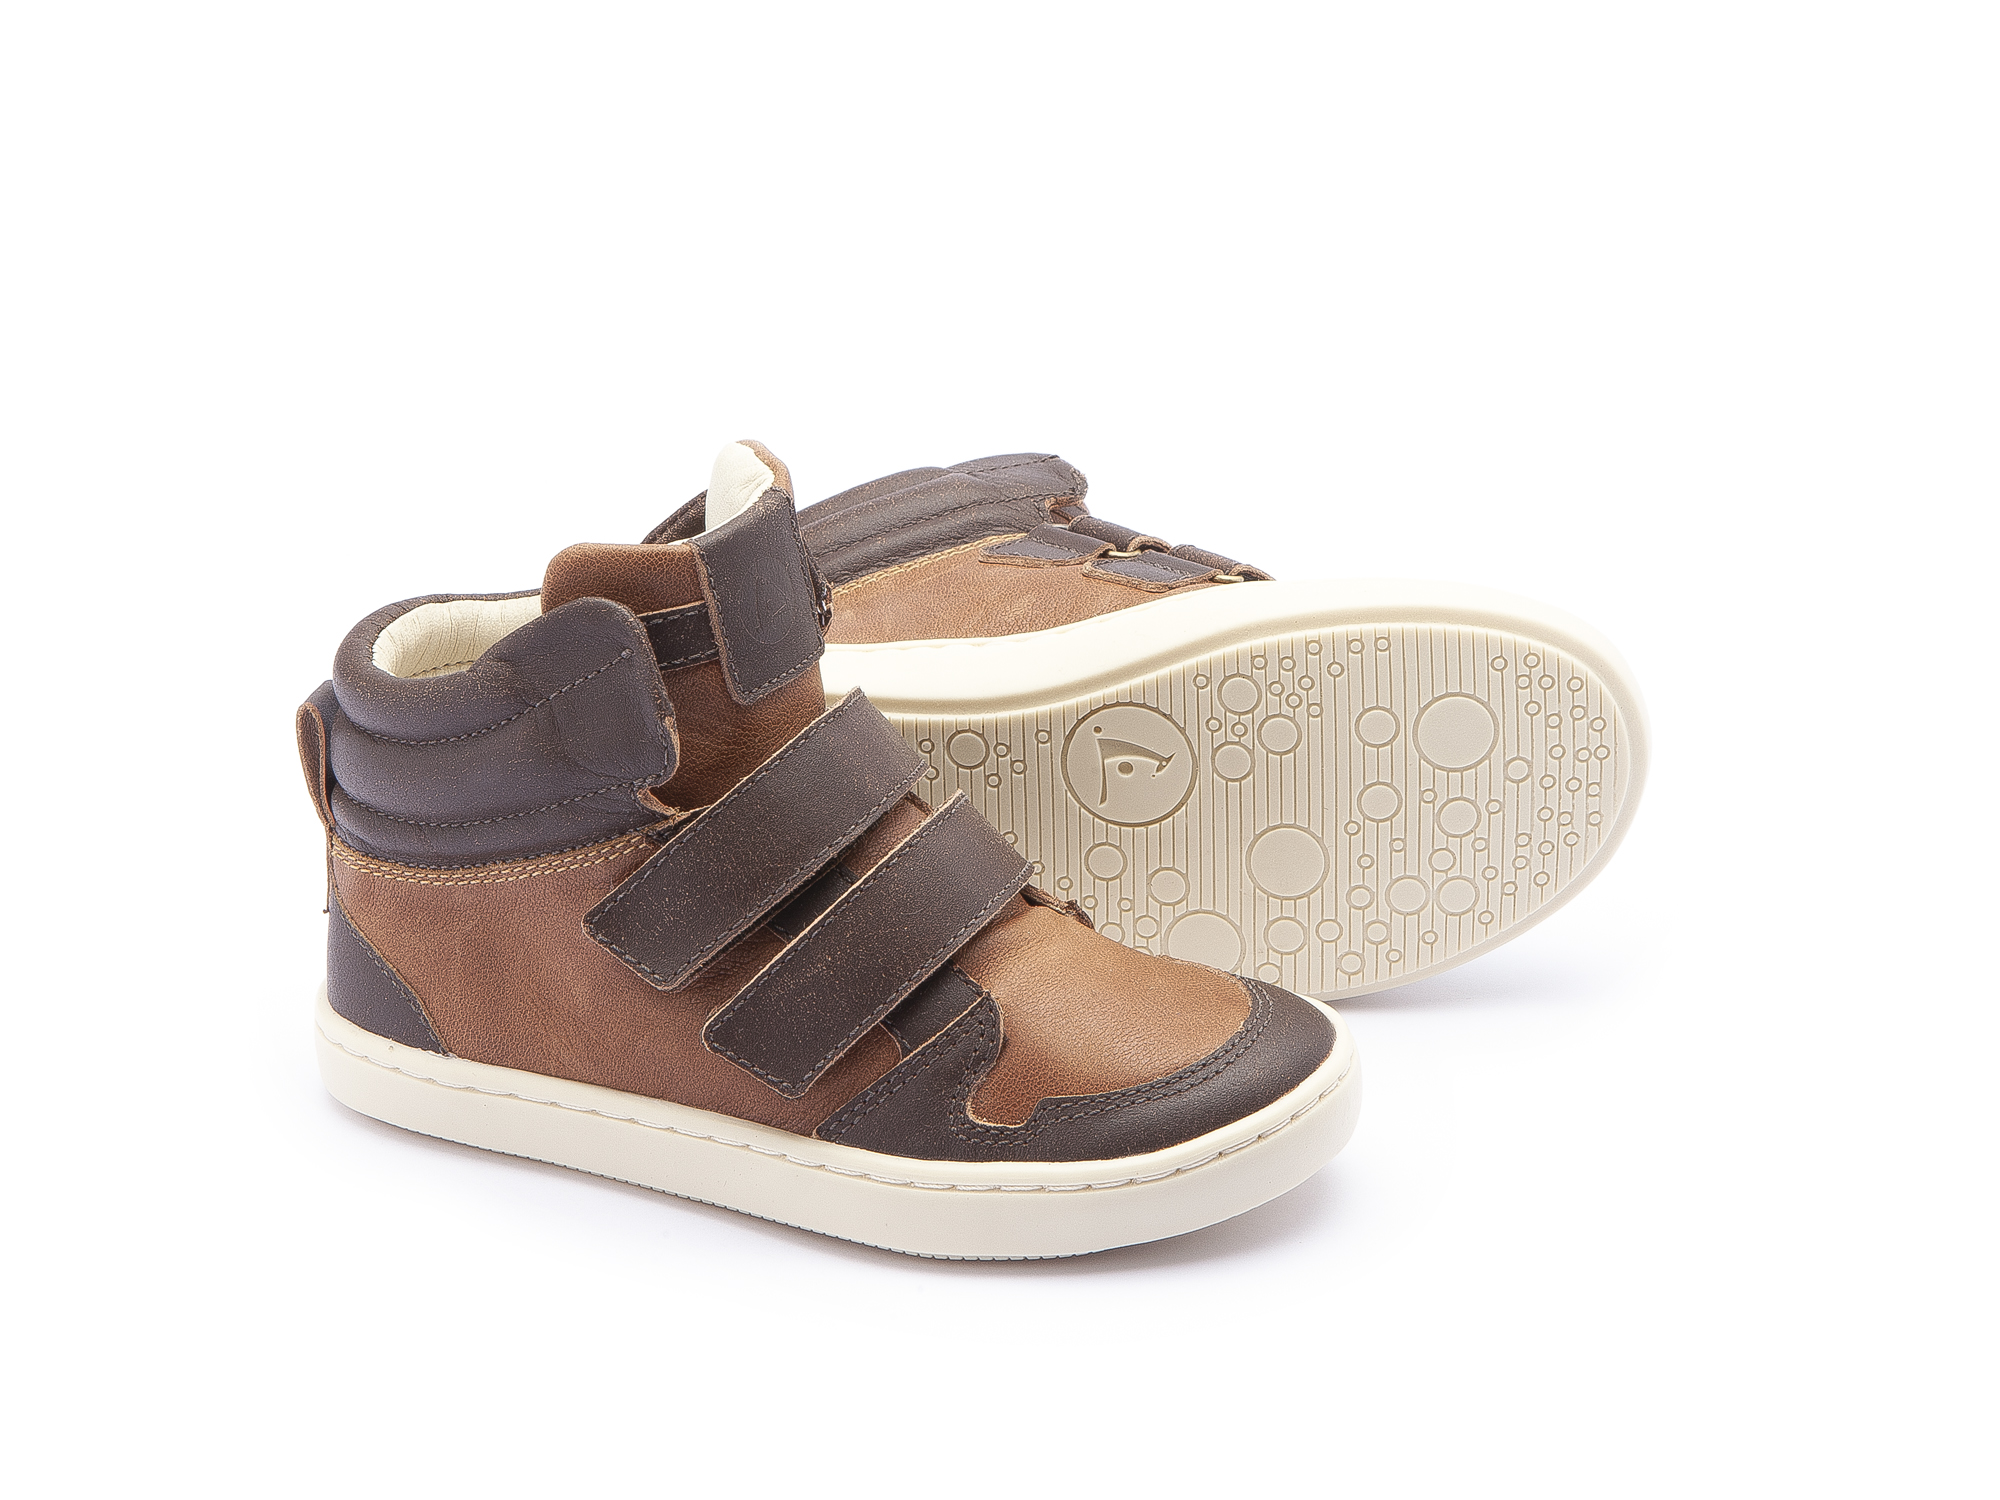 56075aeac T.edg3 3733 Shoes for Boots Little_edge-brown-baby-0-2-years-size-14 ...